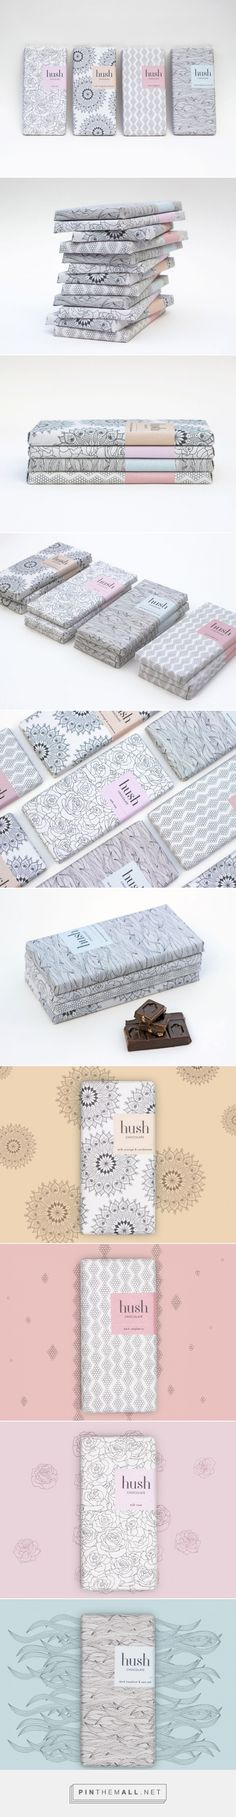 Hush Chocolate Packaging of the World - Creative Package Design Gallery - http://www.packagingoftheworld.com/2016/01/hush-chocolate.html